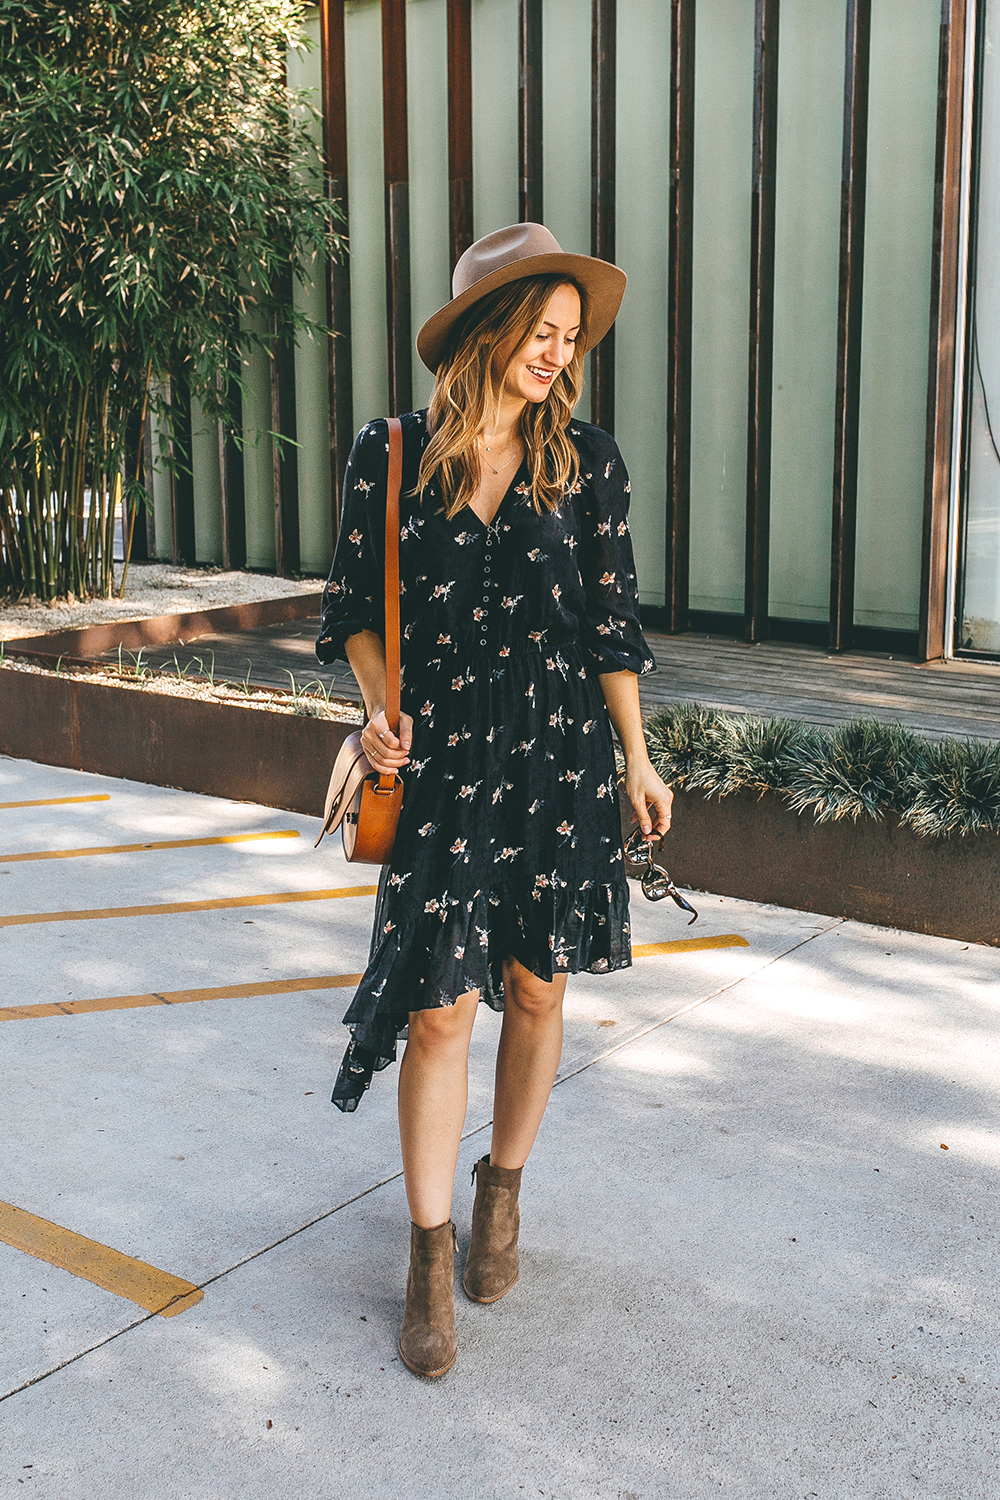 1livvyland-blog-olivia-watson-austin-texas-fashion-blogger-domain-northside-joie-fall-dress-ankle-booties-outfit-1